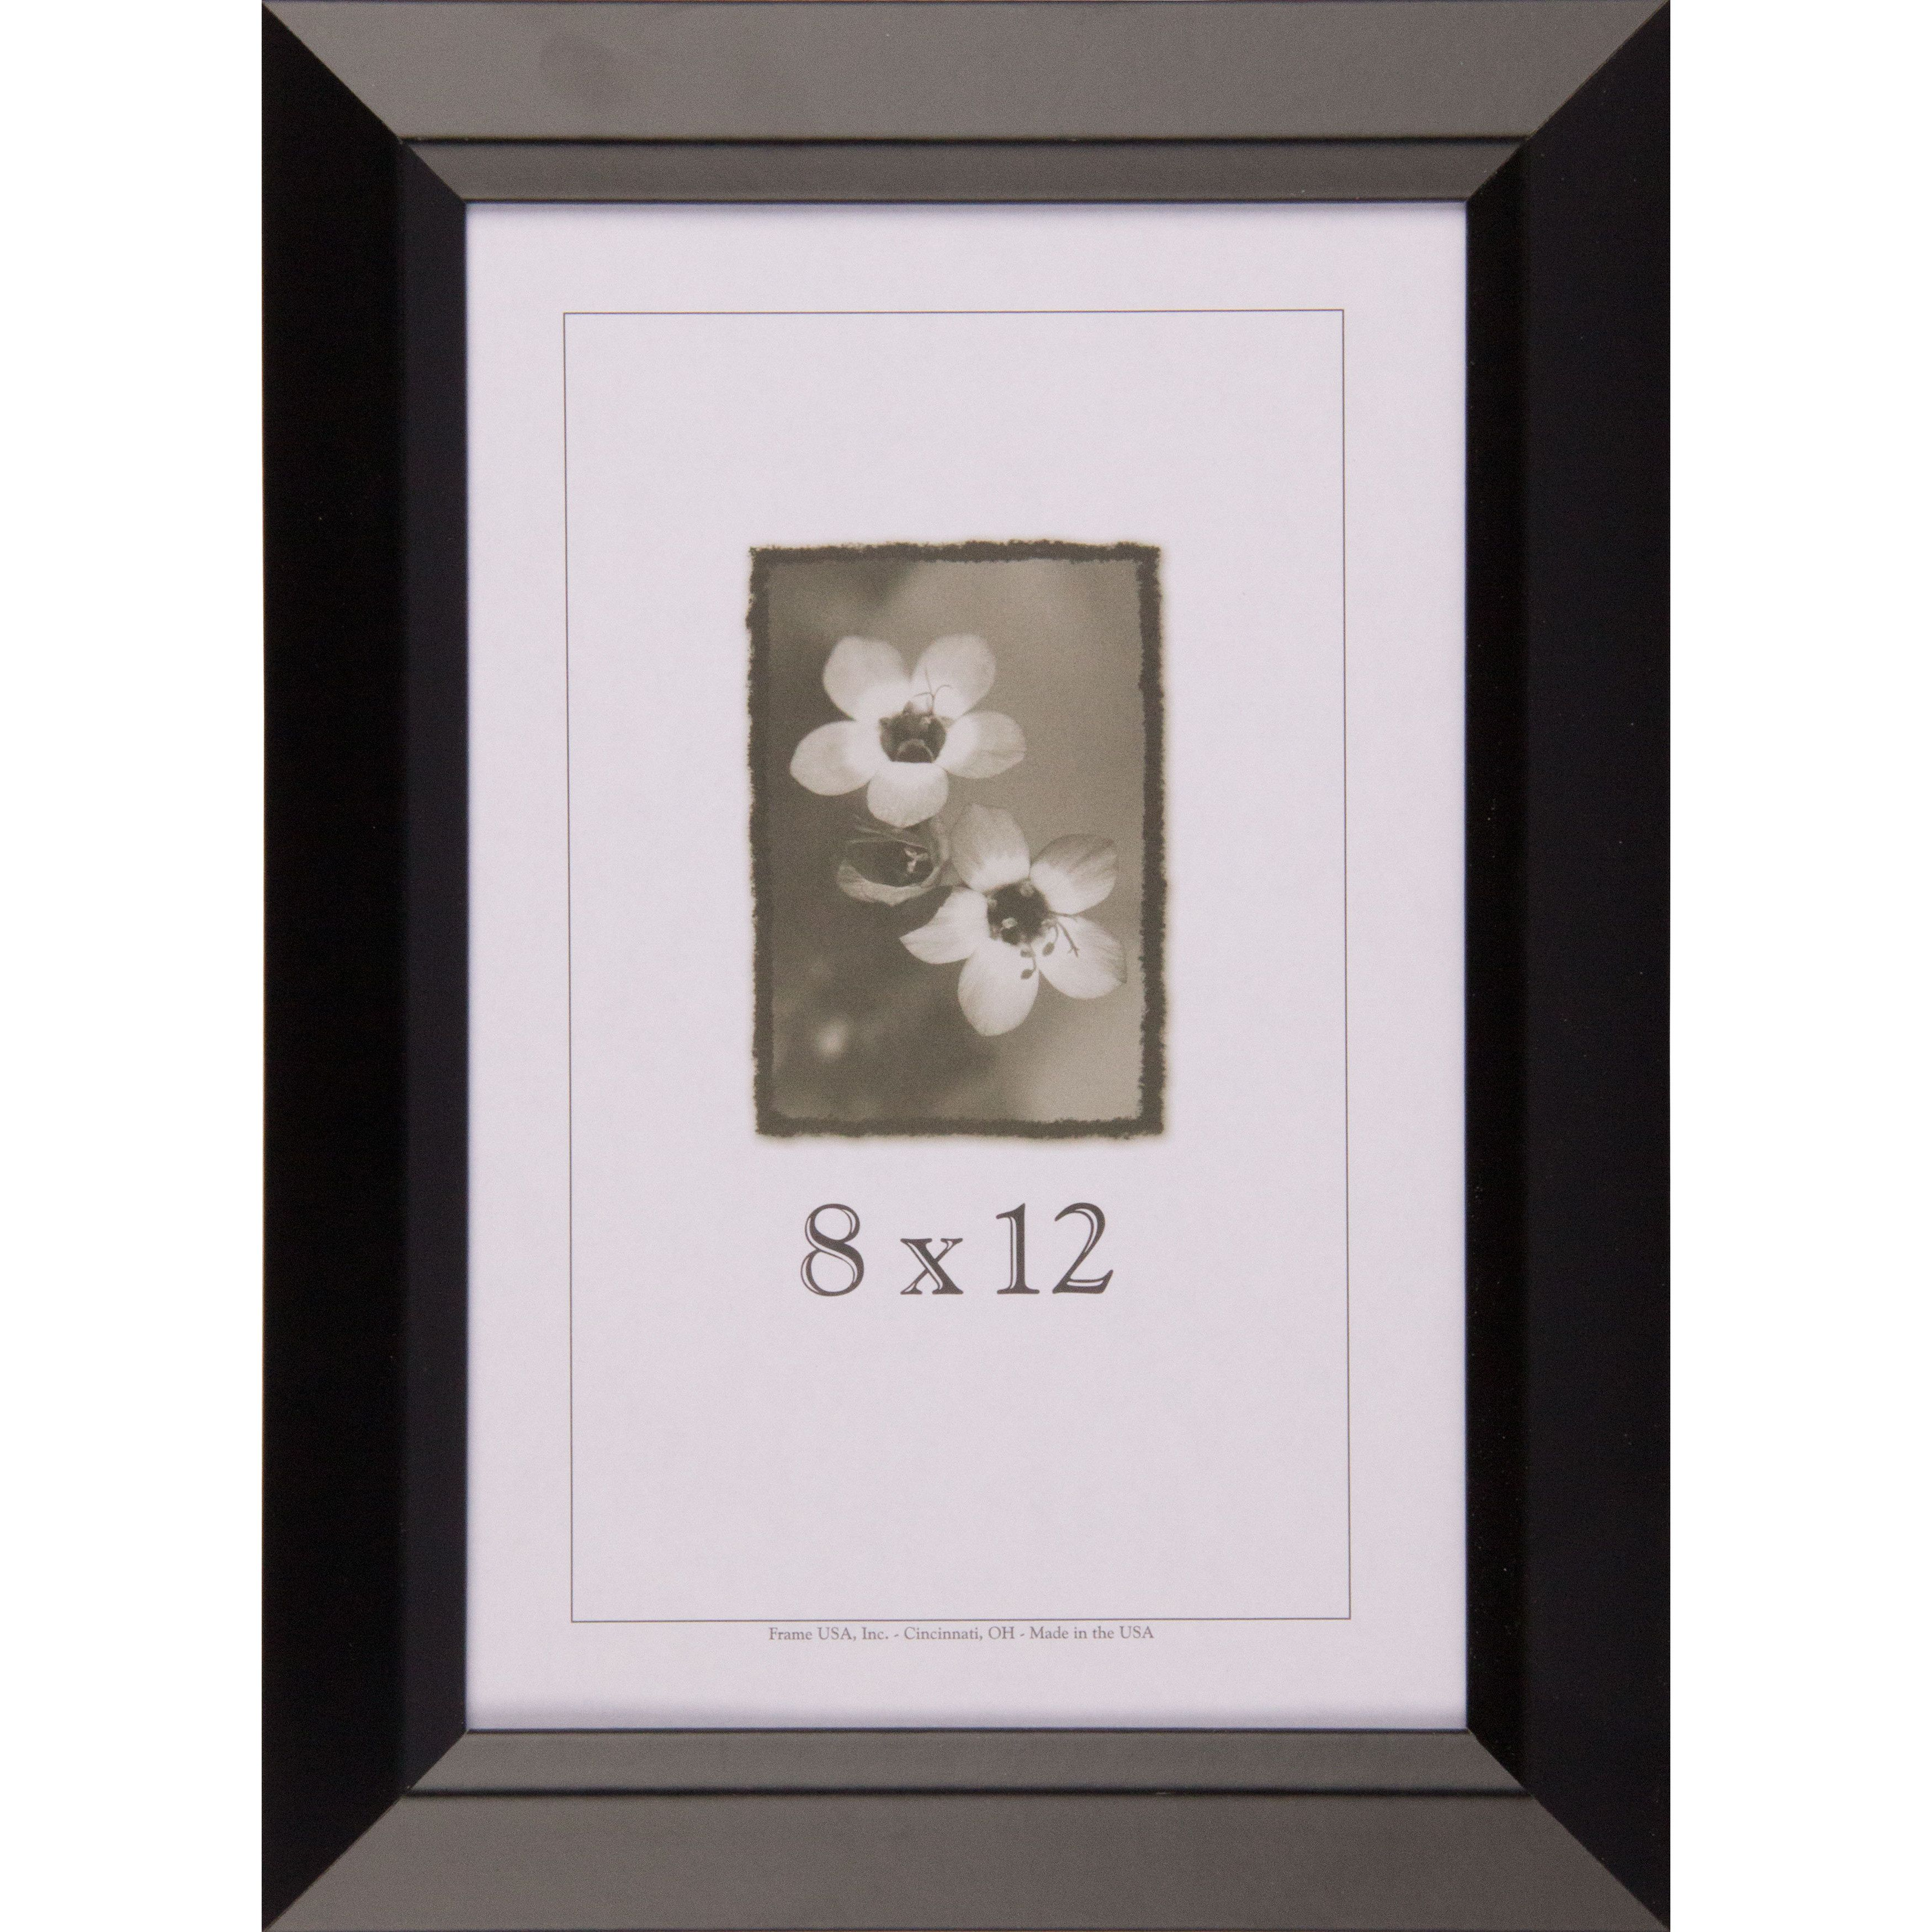 Black Narrow Picture Frame 8.x12 (Black, 8x12) (Wood) | Outlet store ...